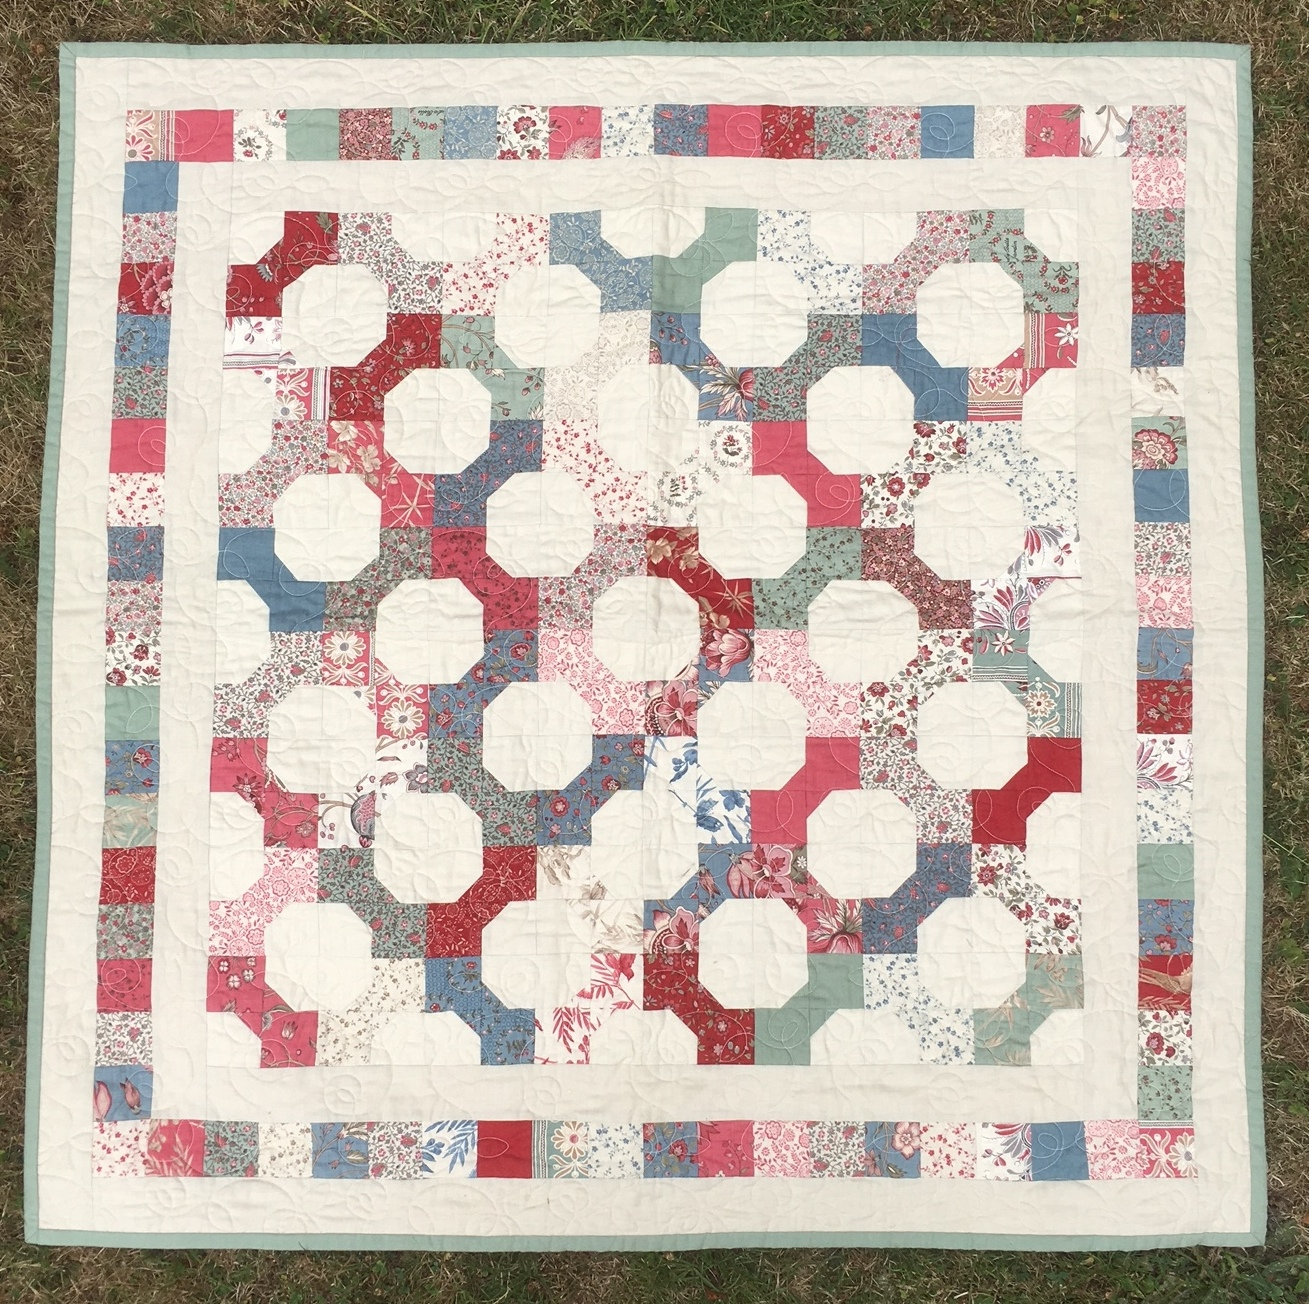 Janet quilt 3 cropped.jpg